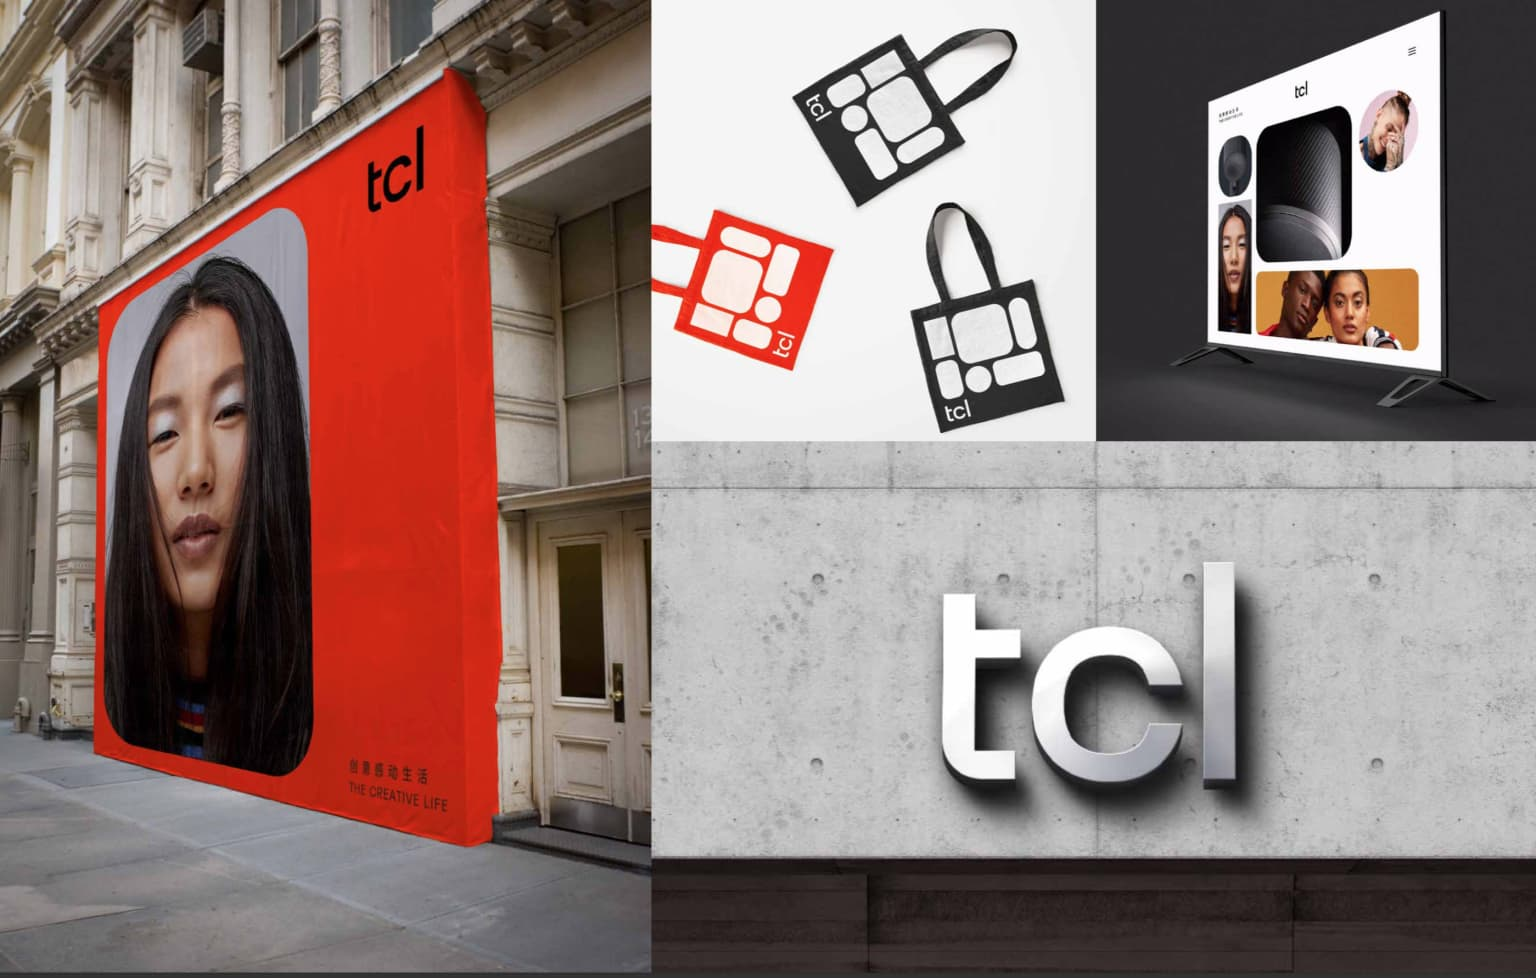 TCL — Delivering an augmented humanity to TCL